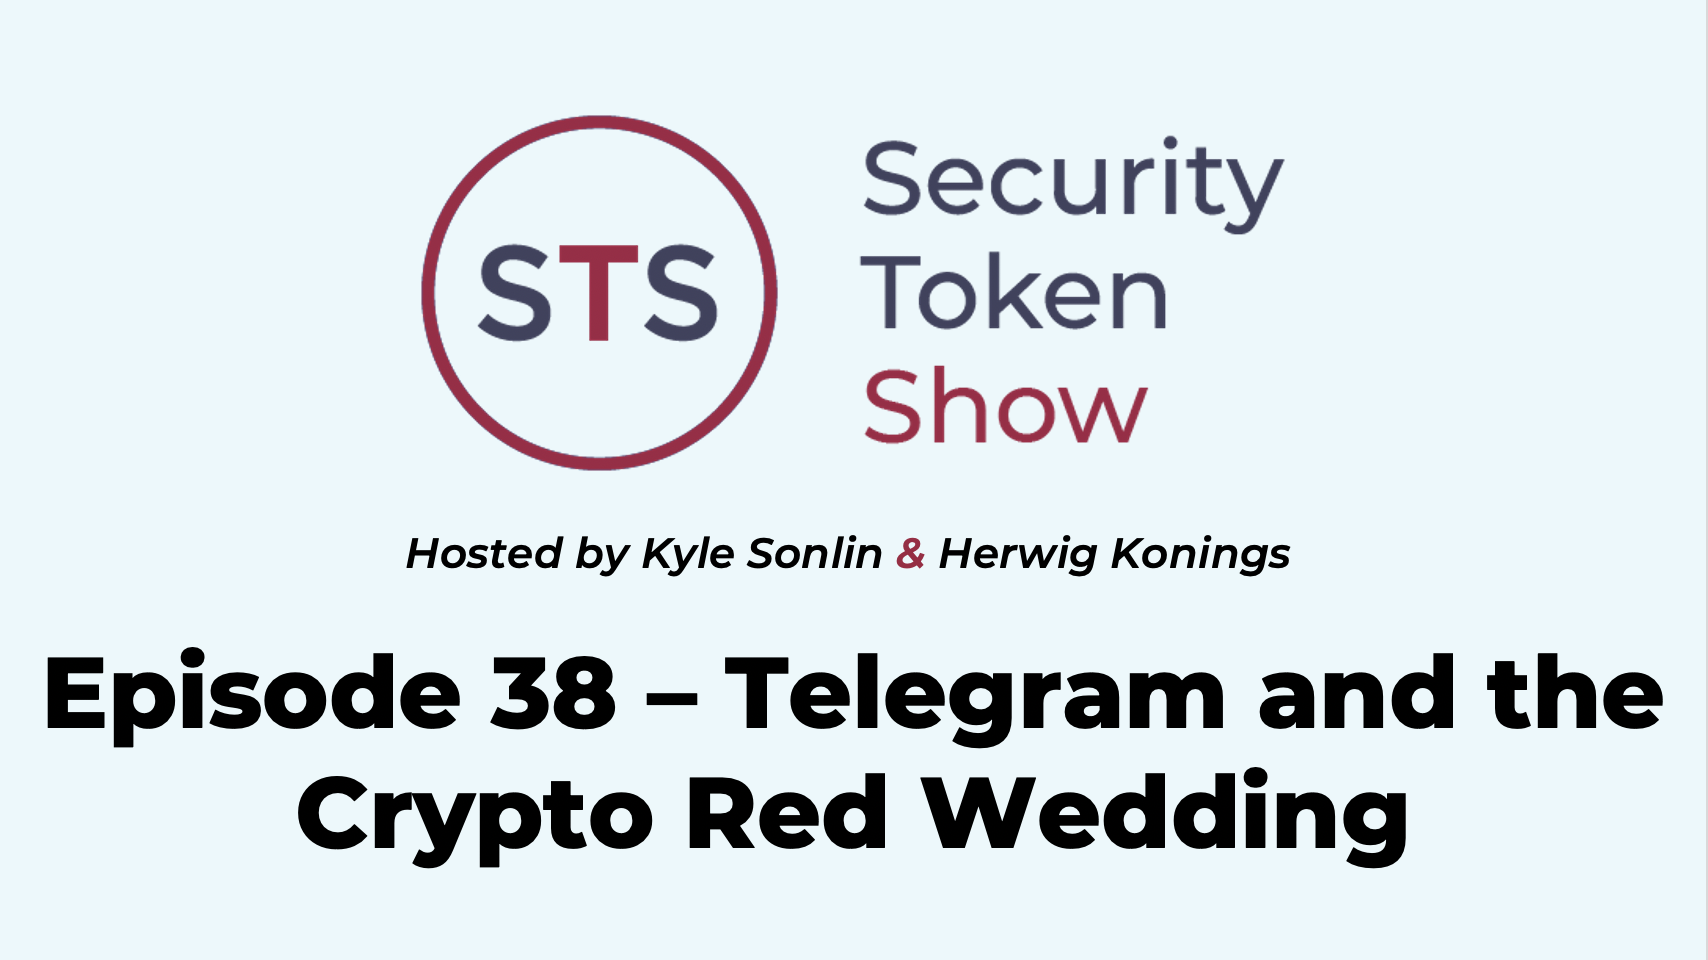 Security Token Show Episode 38 Telegram And The Crypto Red Wedding